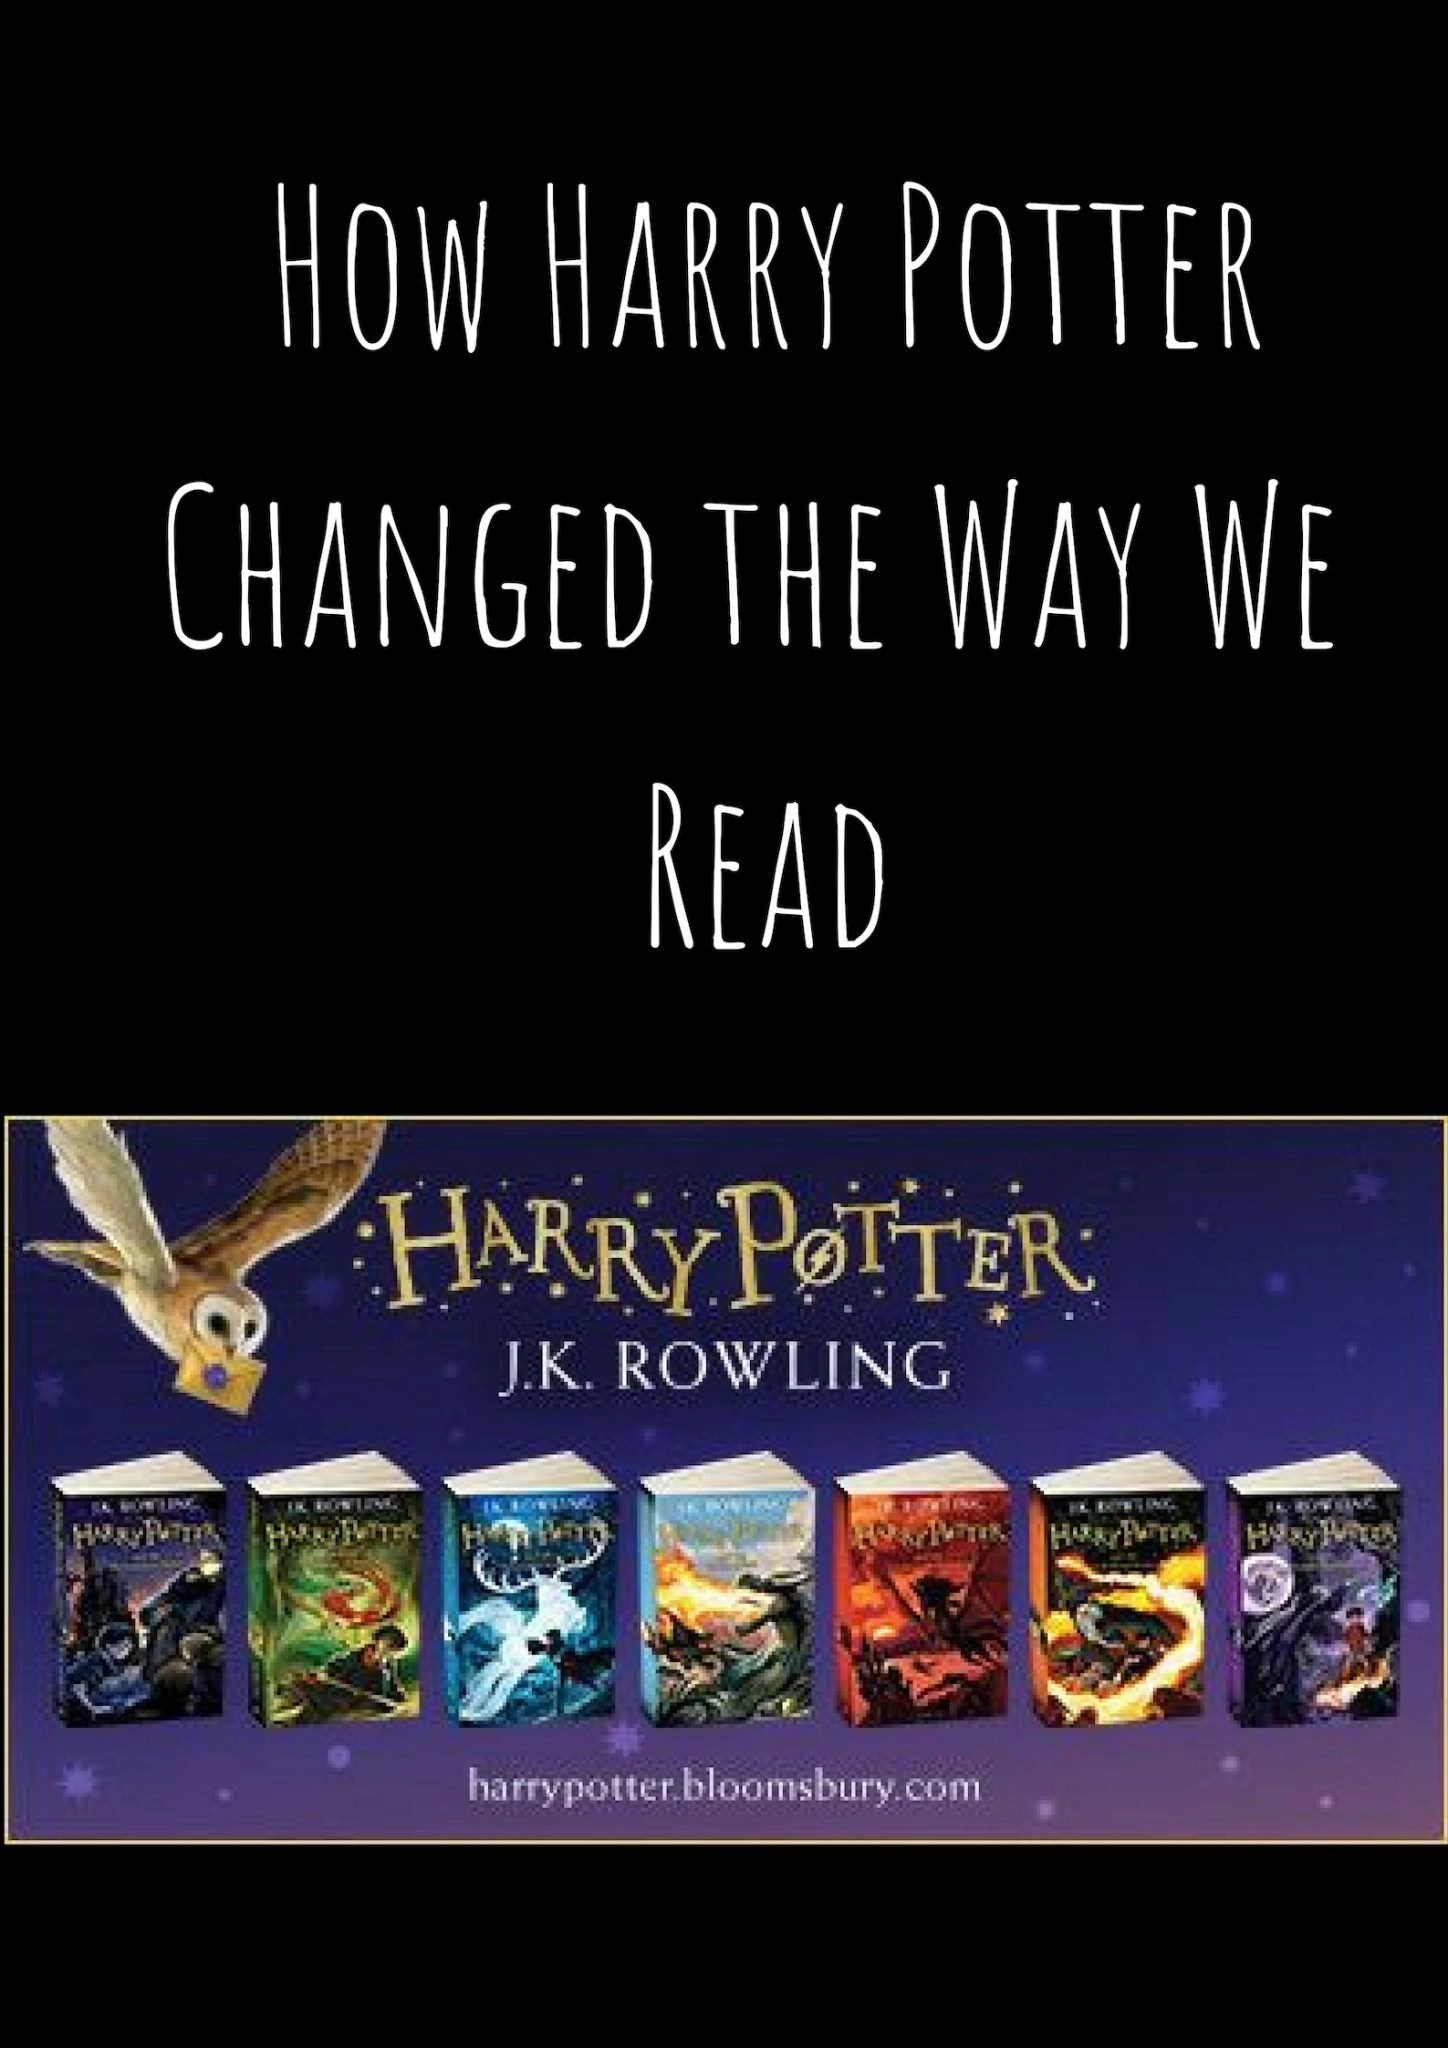 How Harry Potter Changed the Way We Read